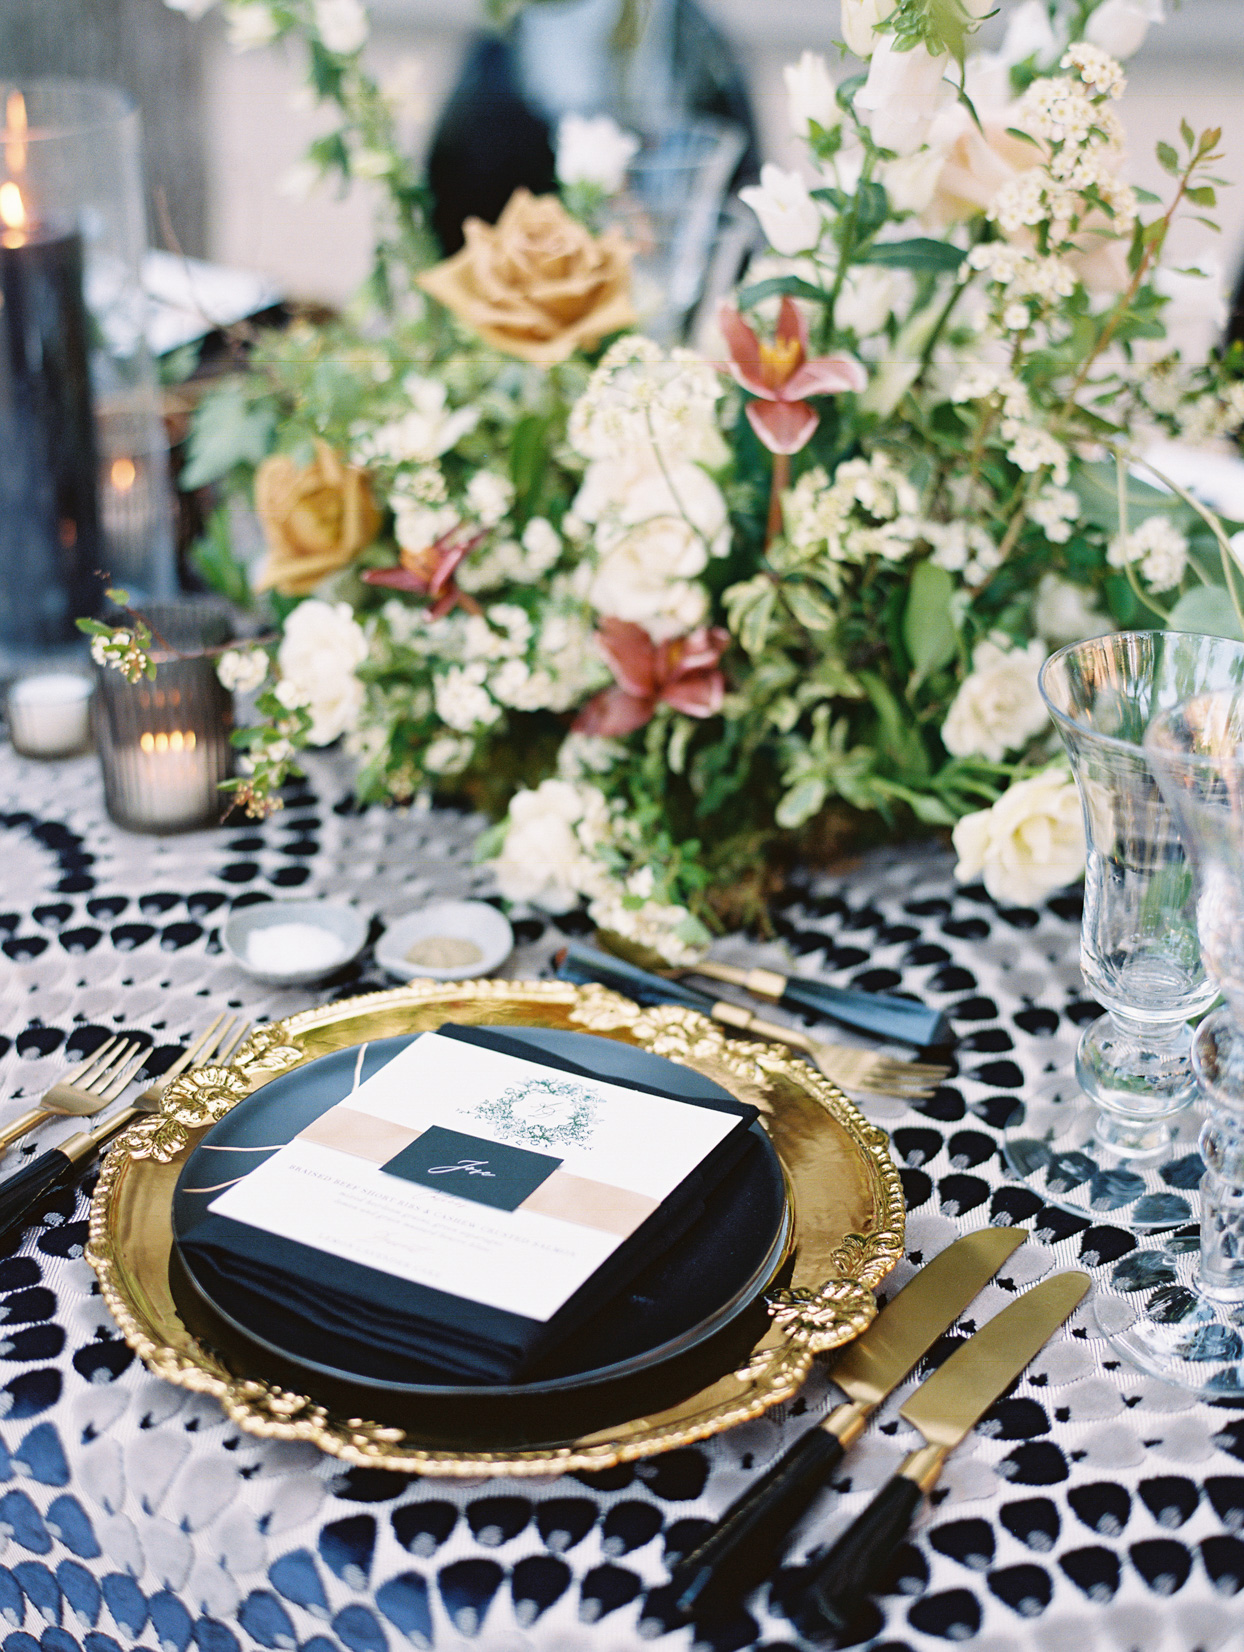 table setting with gold charger and black plate